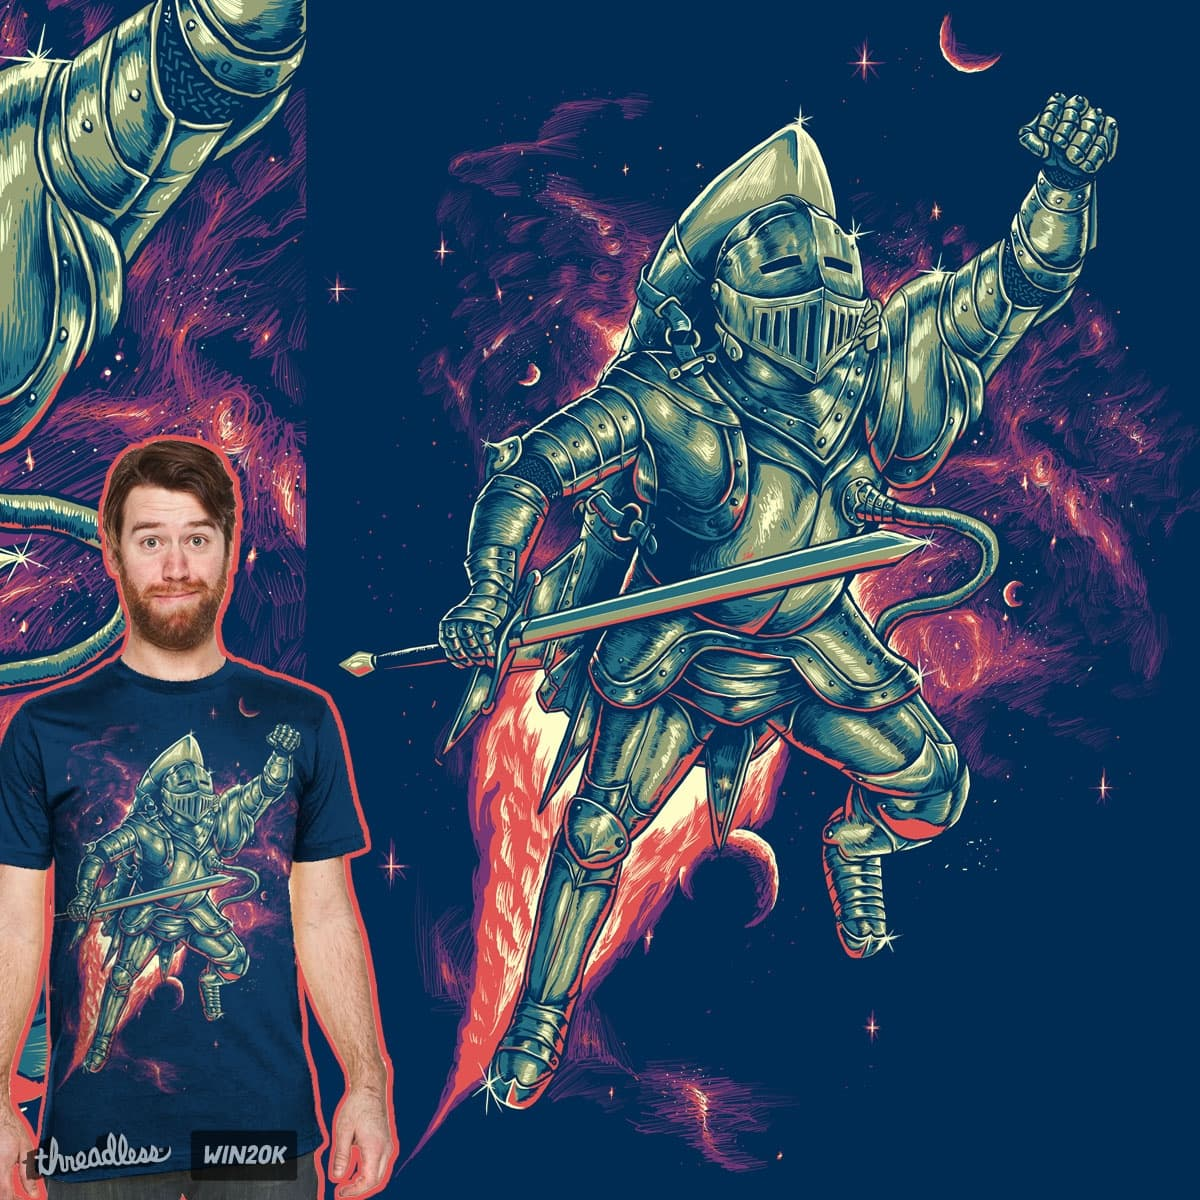 rocket knight by bokien on Threadless